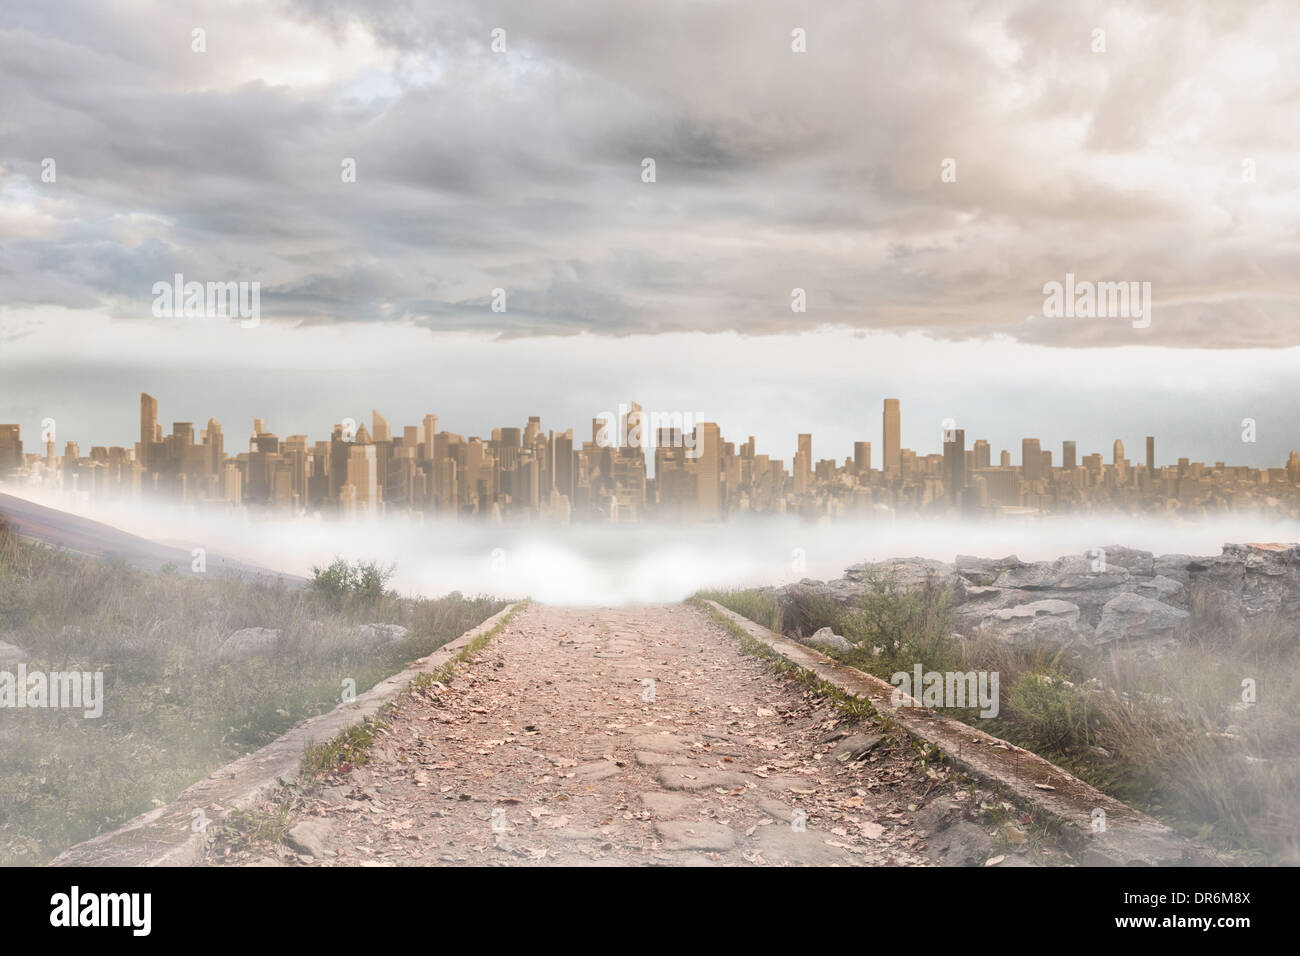 Stony path leading to large urban sprawl - Stock Image